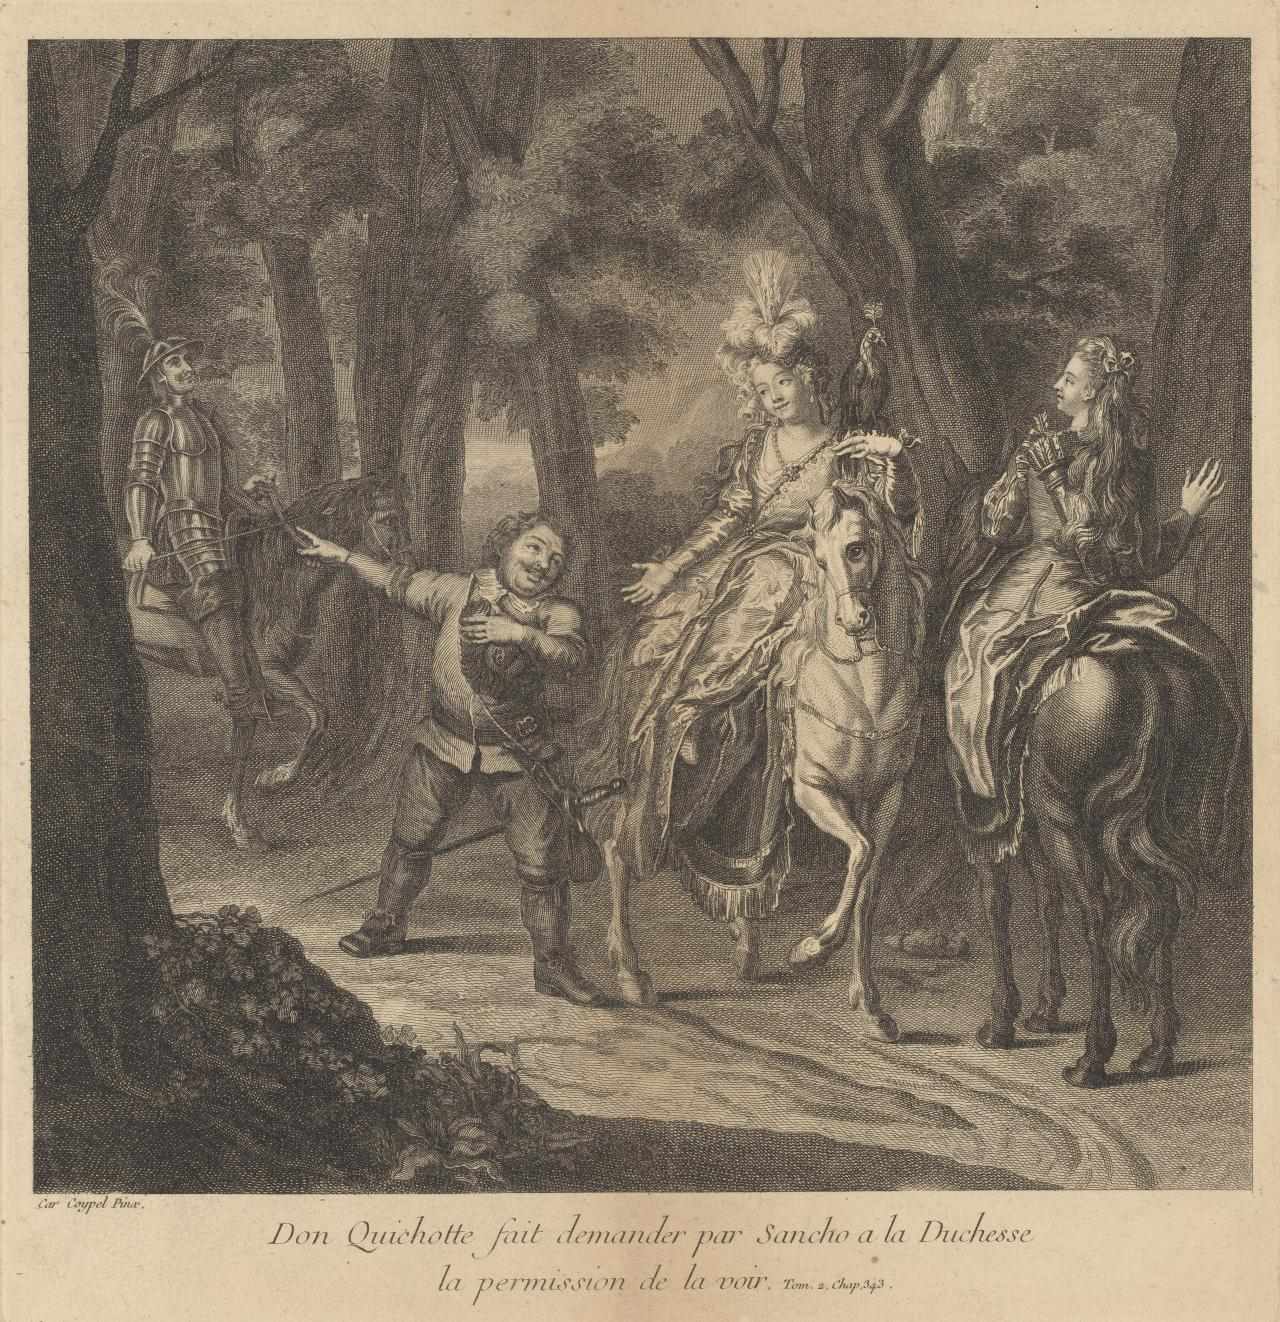 Don Quichotte fait demander...(Don Quichotte 1 of 24 plates)